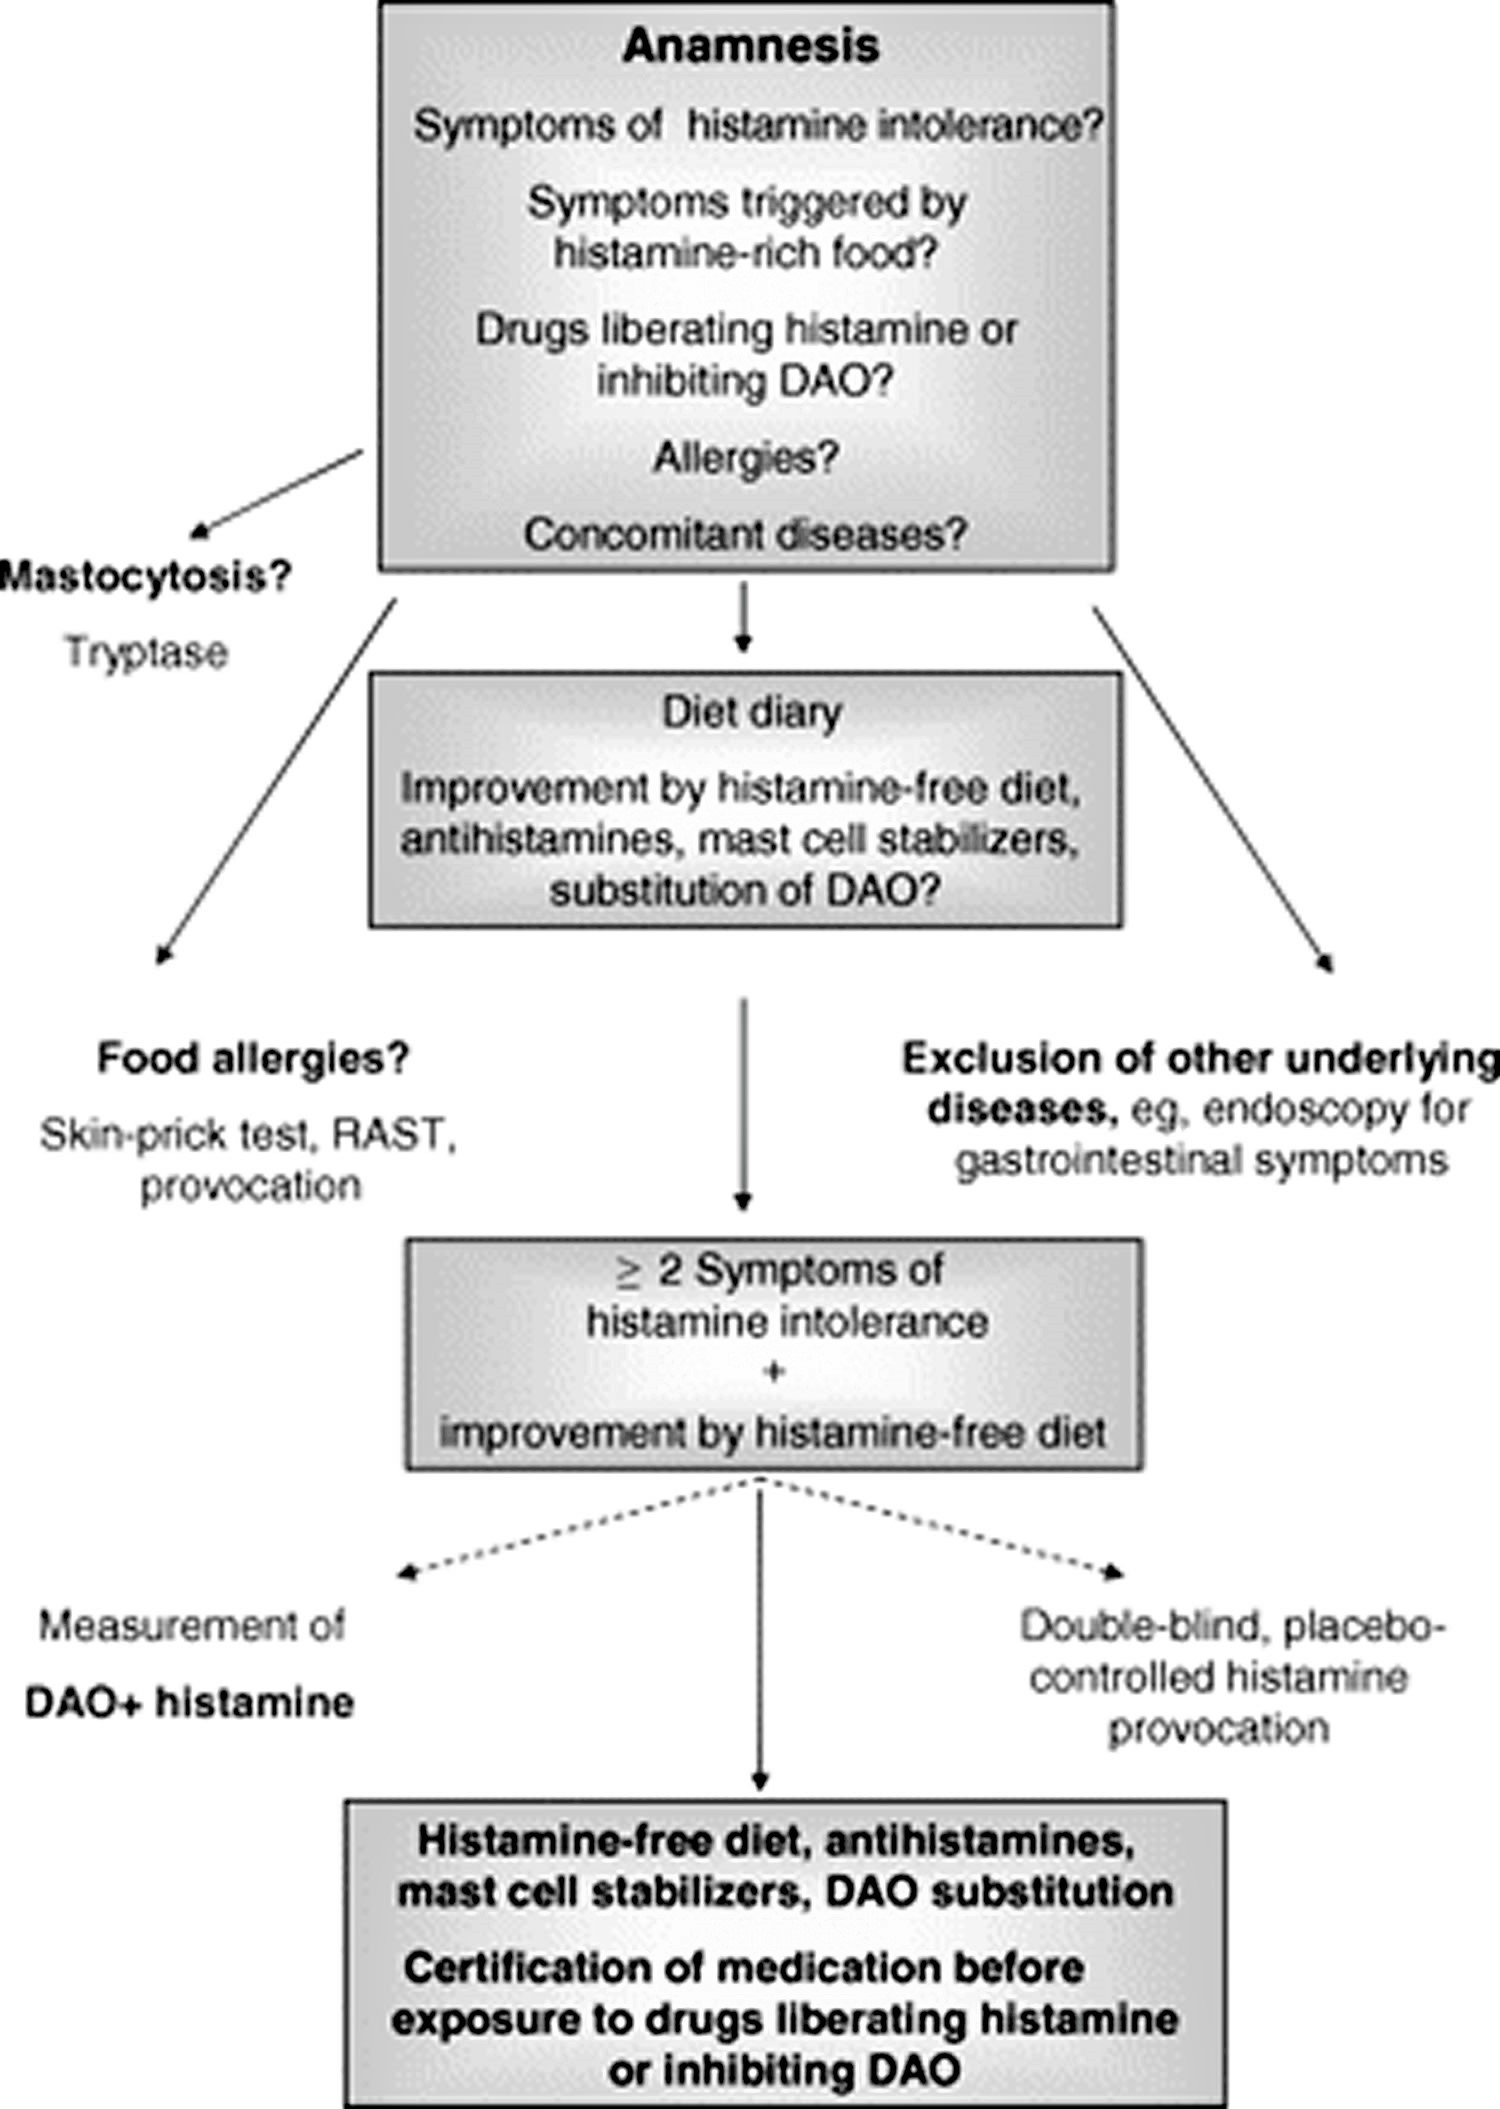 Diagnostic pathway for histamine intolerance